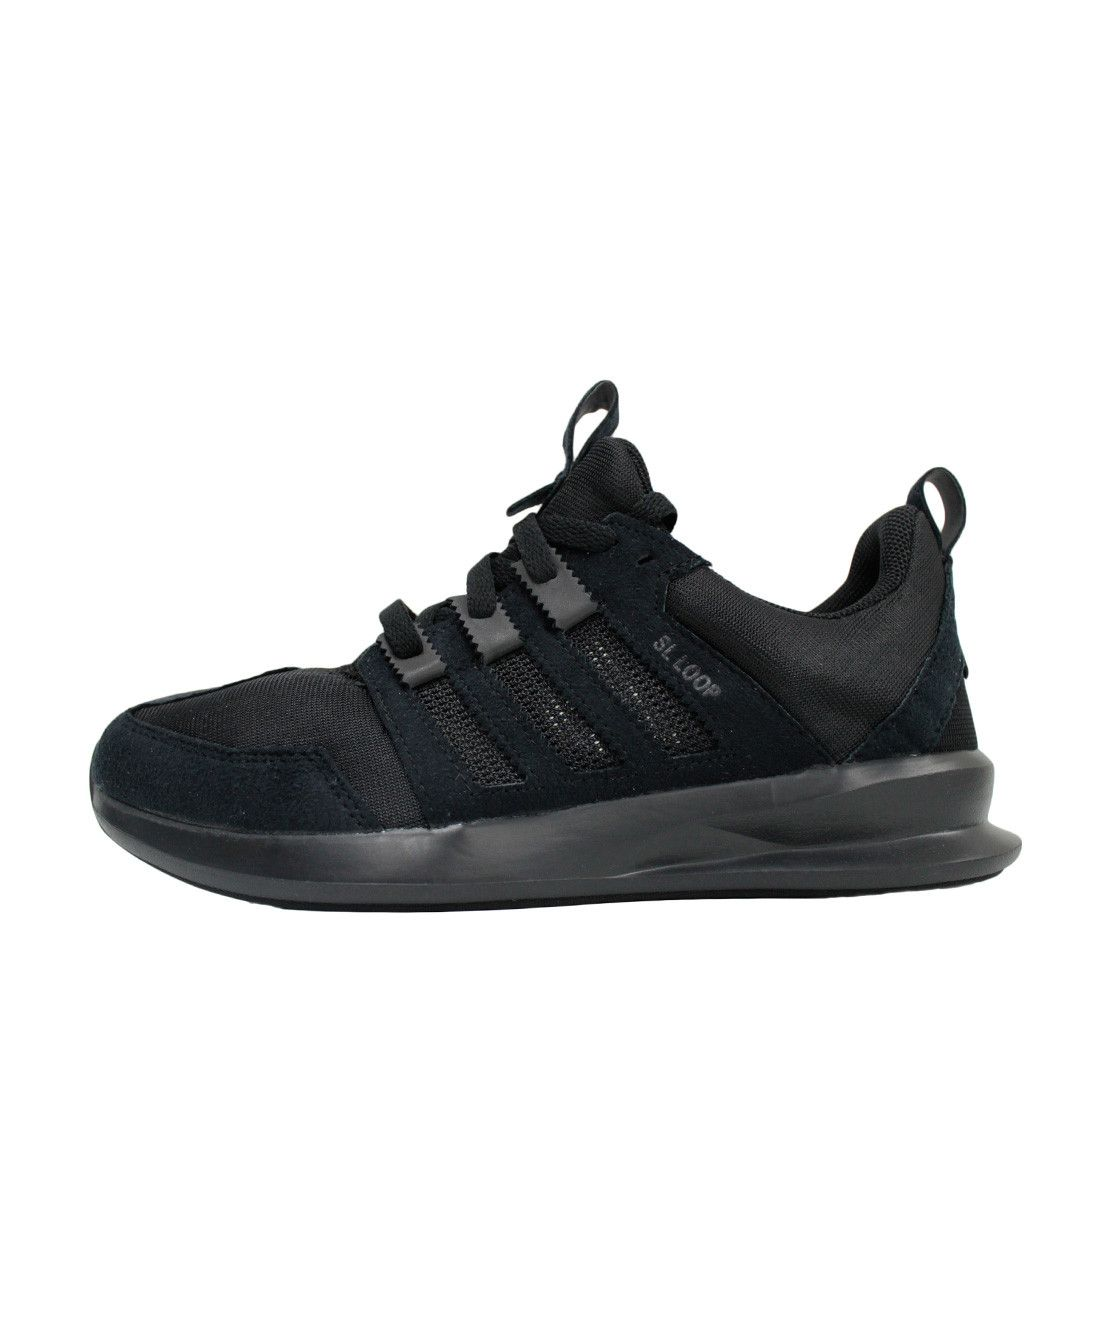 4ce8f0ef3d71 Adidas  SL Loop Runner (CBlack) from Extra Butter NY